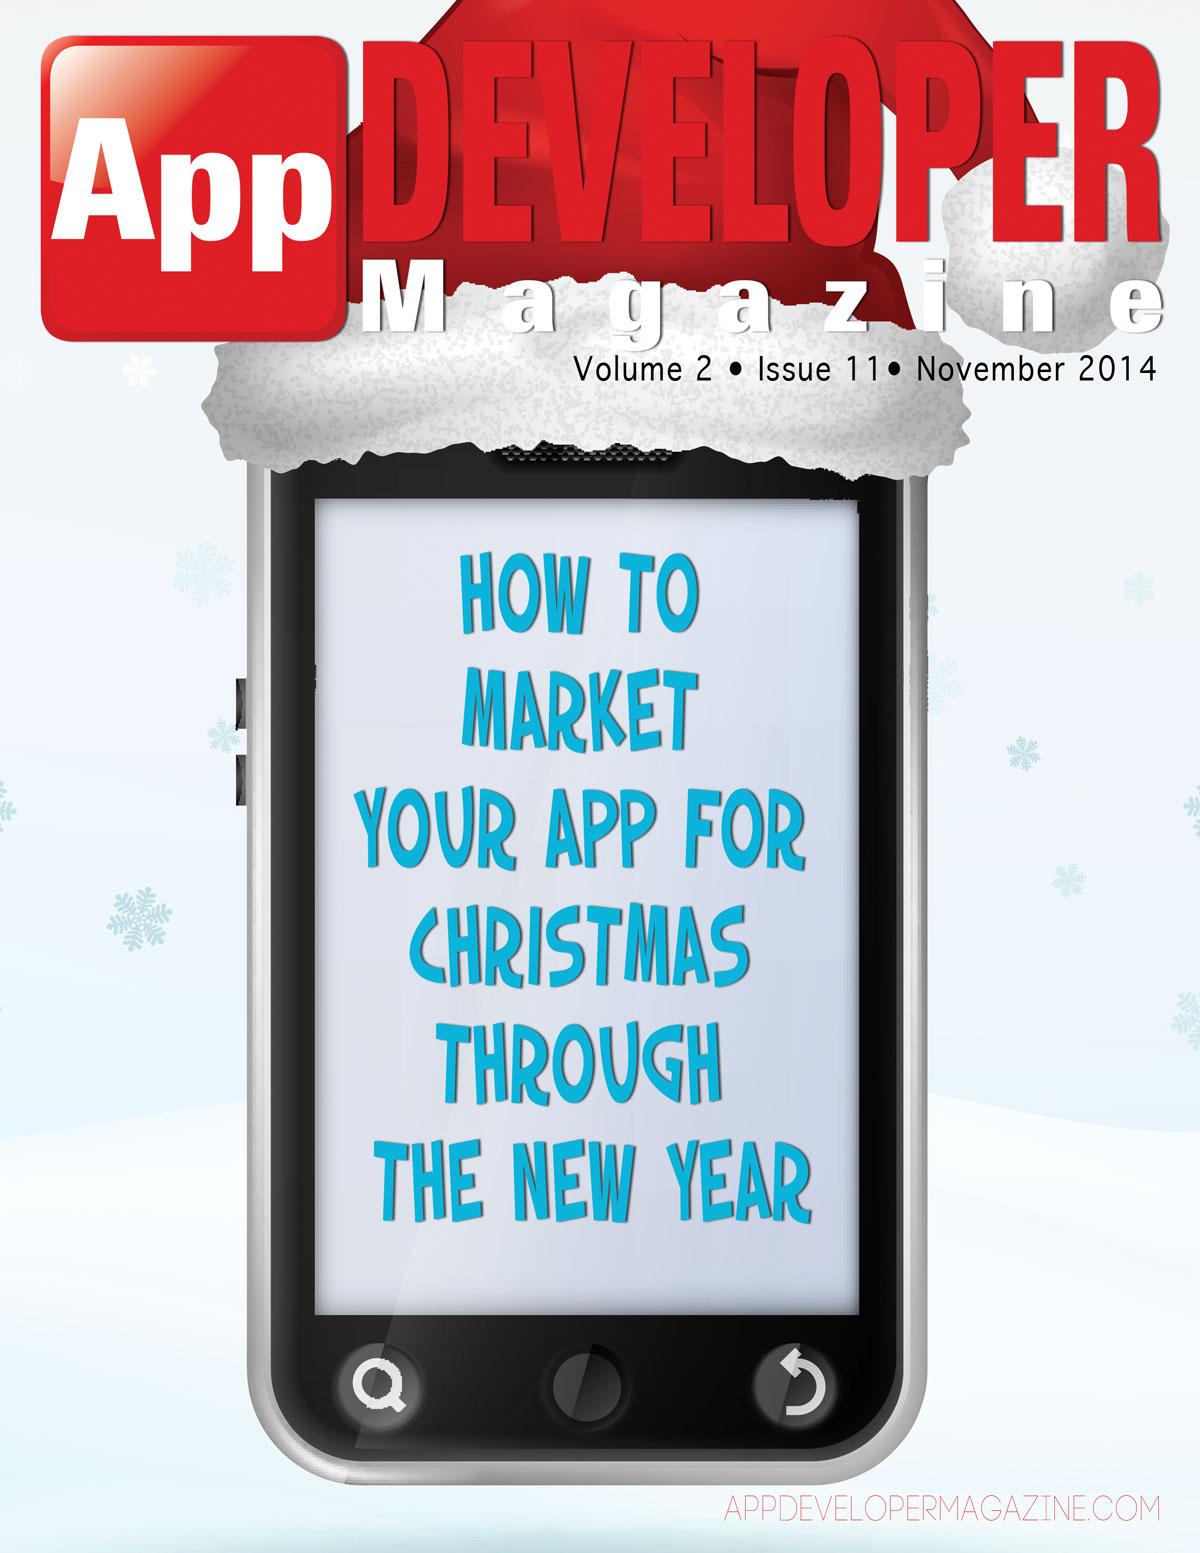 App Developer Magazine November 2014